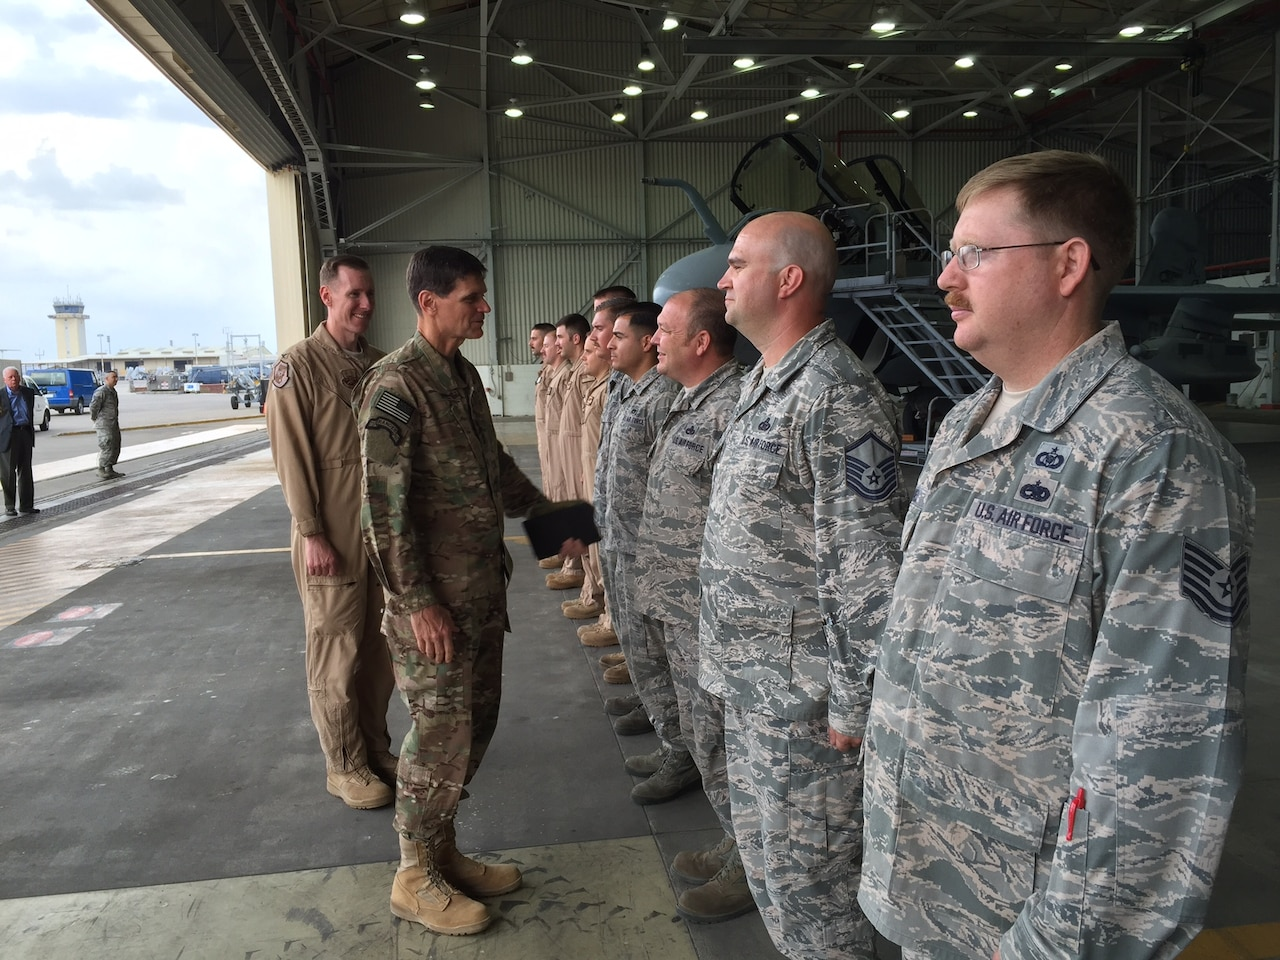 In a hangar off the flightline at Incirlik Air Base in southeastern Turkey, Army Gen. Joseph L. Votel, commander of U.S. Central Command, greets representatives from a Marine Corps EA-6 Prowler Squadron, a KC-135 tanker crew, and several aircraft maintainers, May 23, 2016. Votel was accompanied by 447th Air Expeditionary Group Commander Air Force Col. Sean McCarthy. DoD photo by Cheryl Pellerin